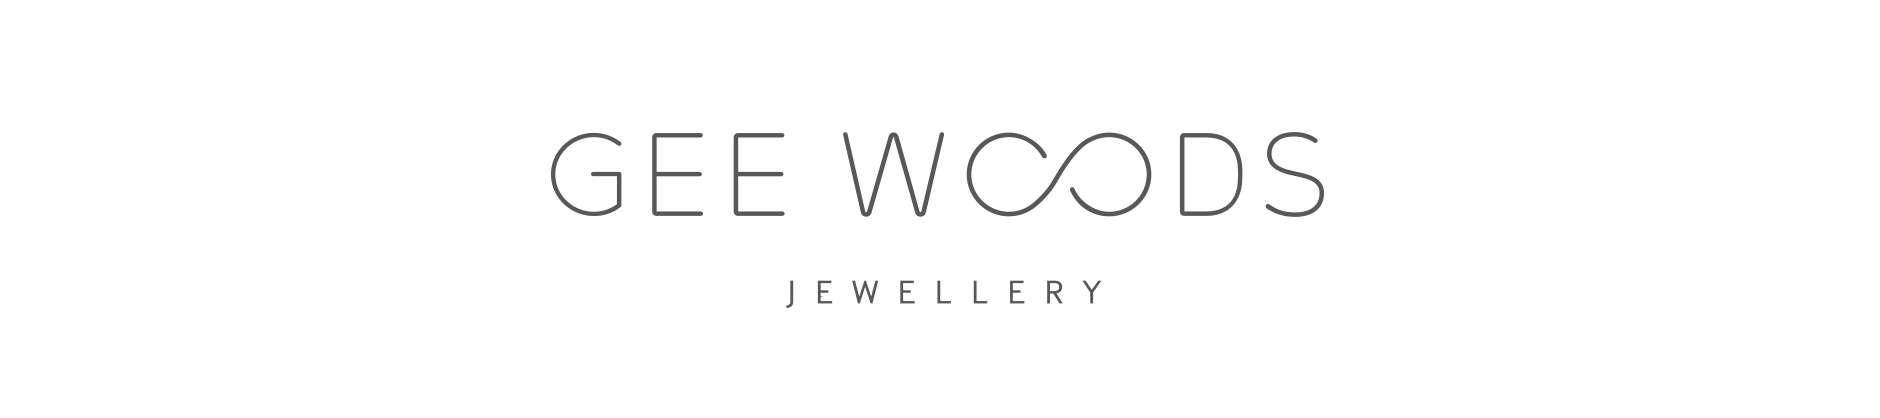 Gee Woods Jewellery